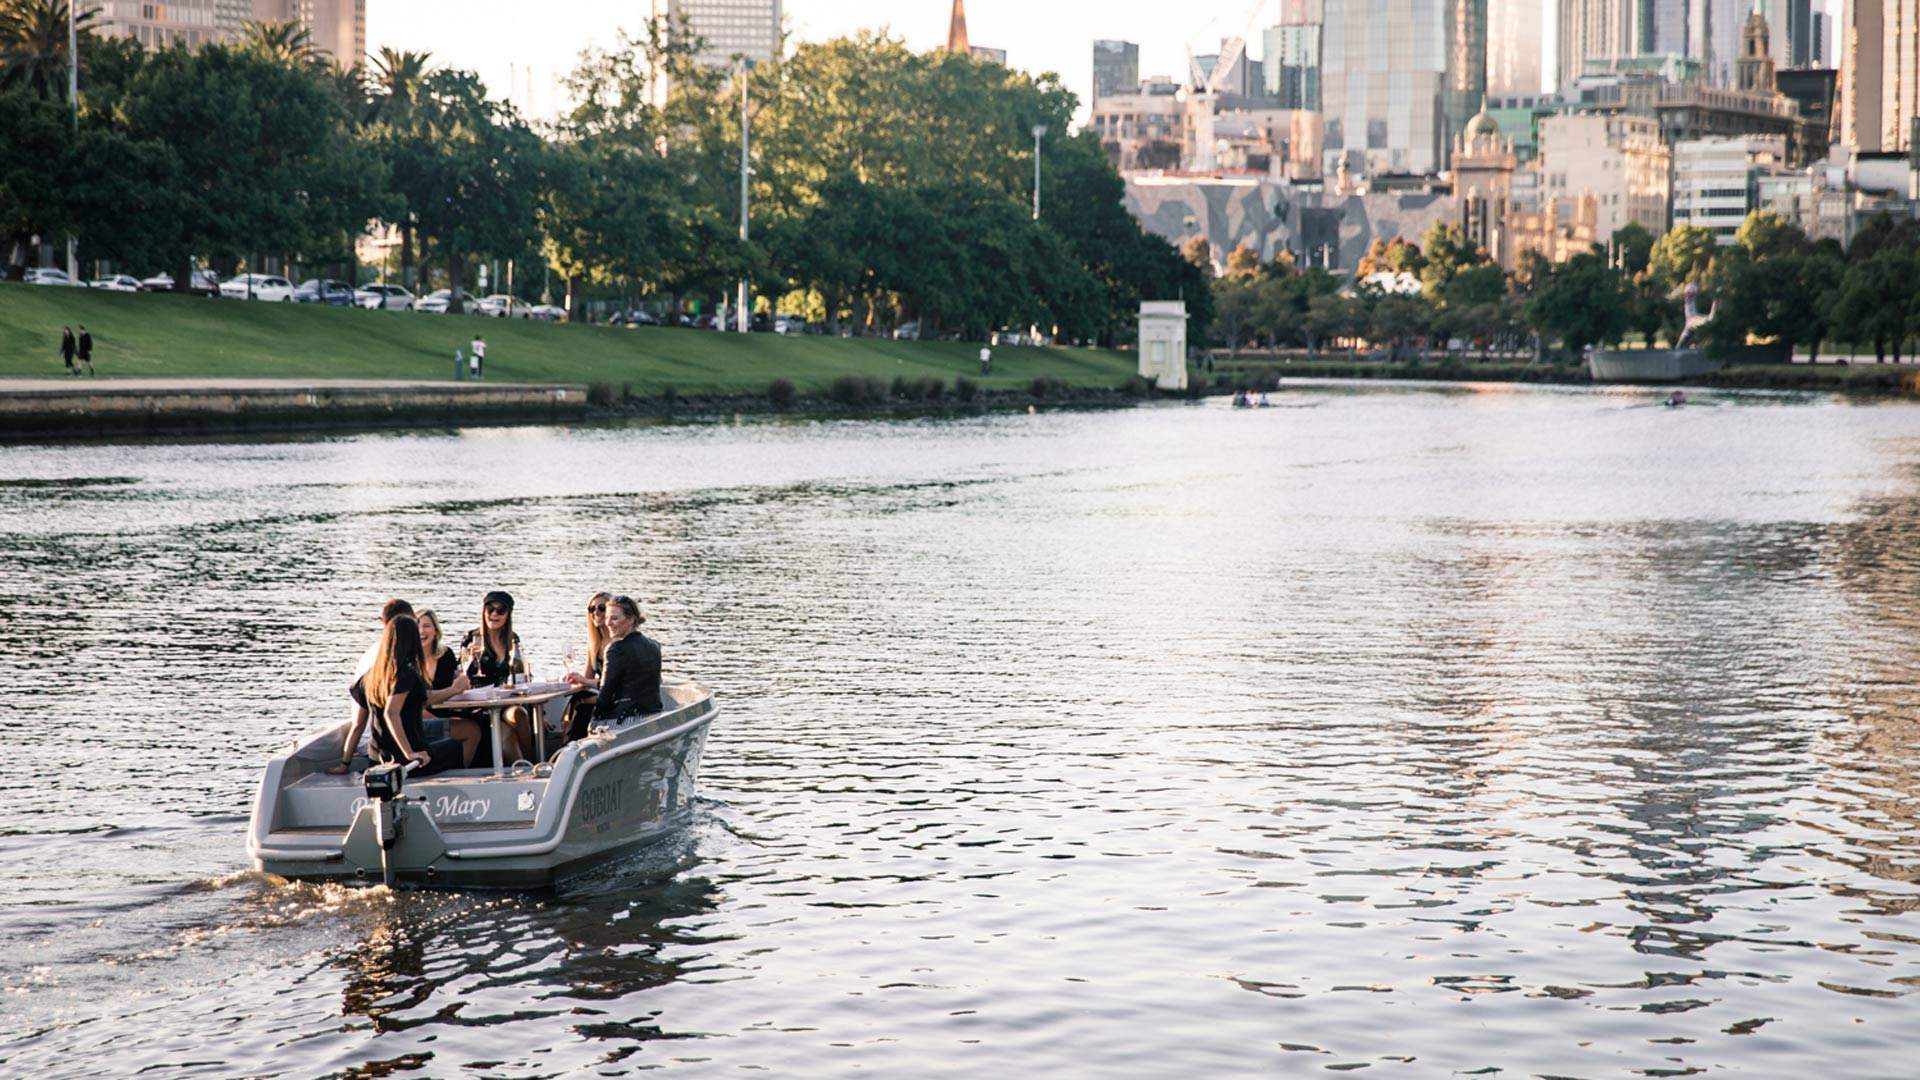 You'll Soon Be Able to Hire a Picnic Boat to Sail Down the Yarra River